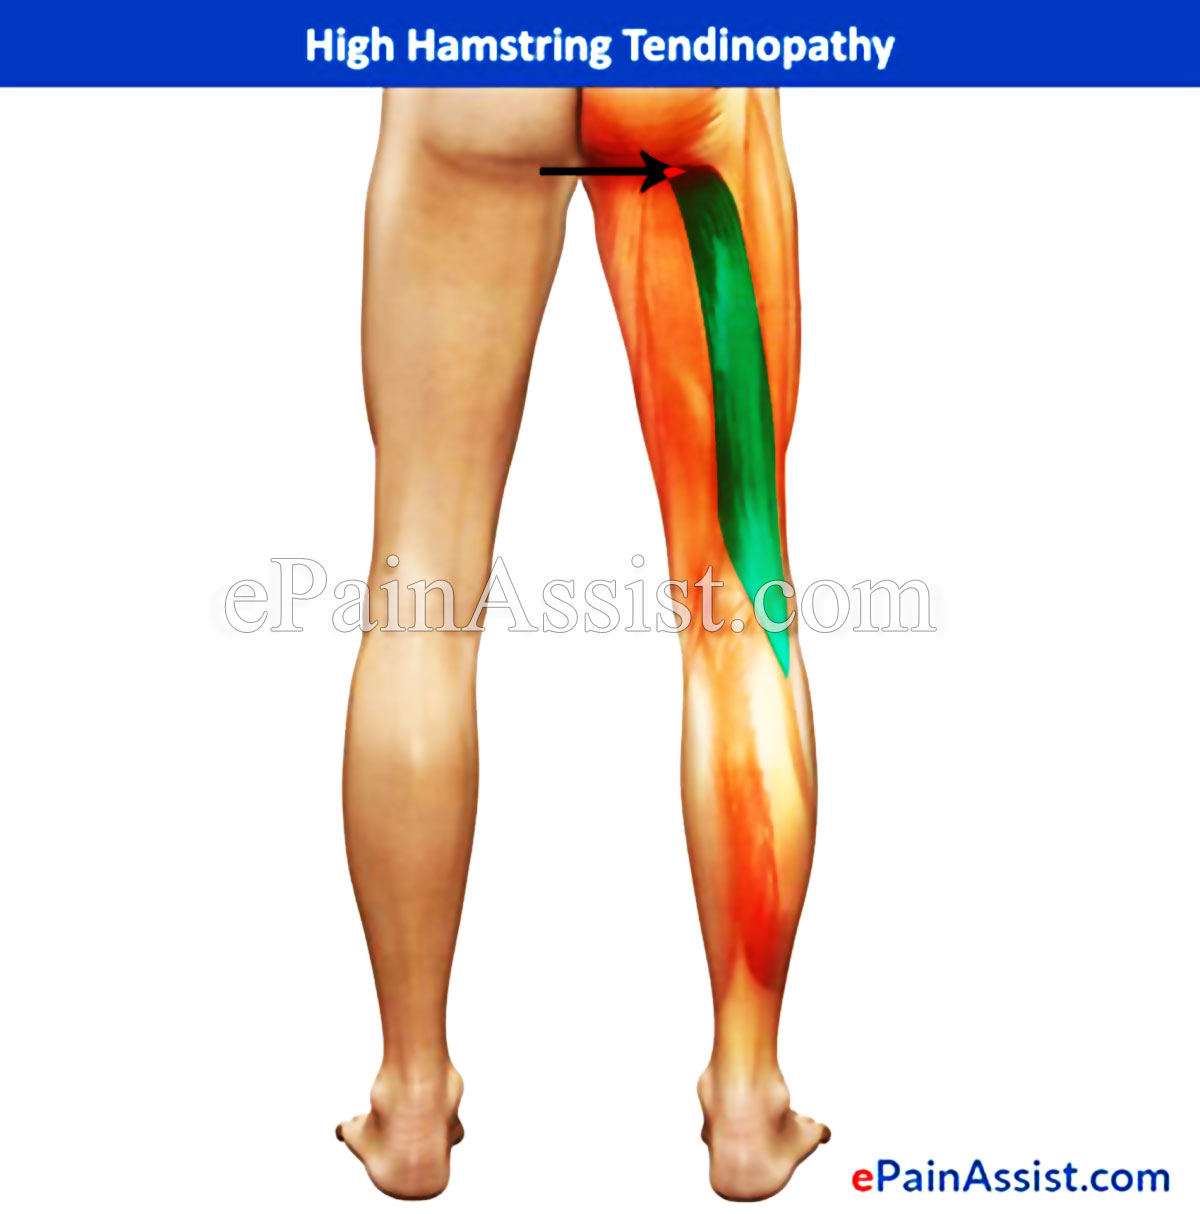 High Hamstring Tendinopathy